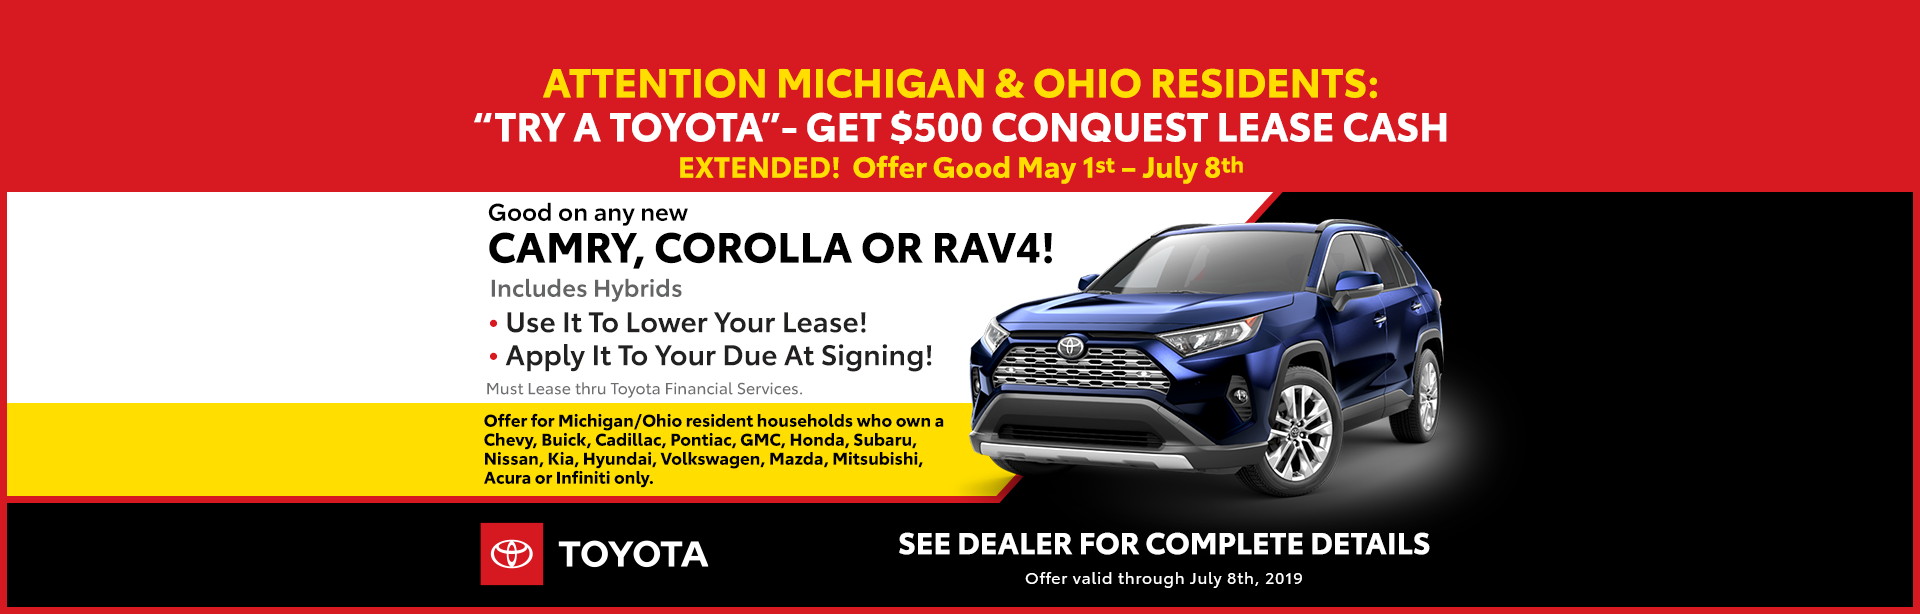 Toyota Dealership Dayton Ohio >> New And Used Toyota Dealer Joseph Toyota Serving Cincinnati And